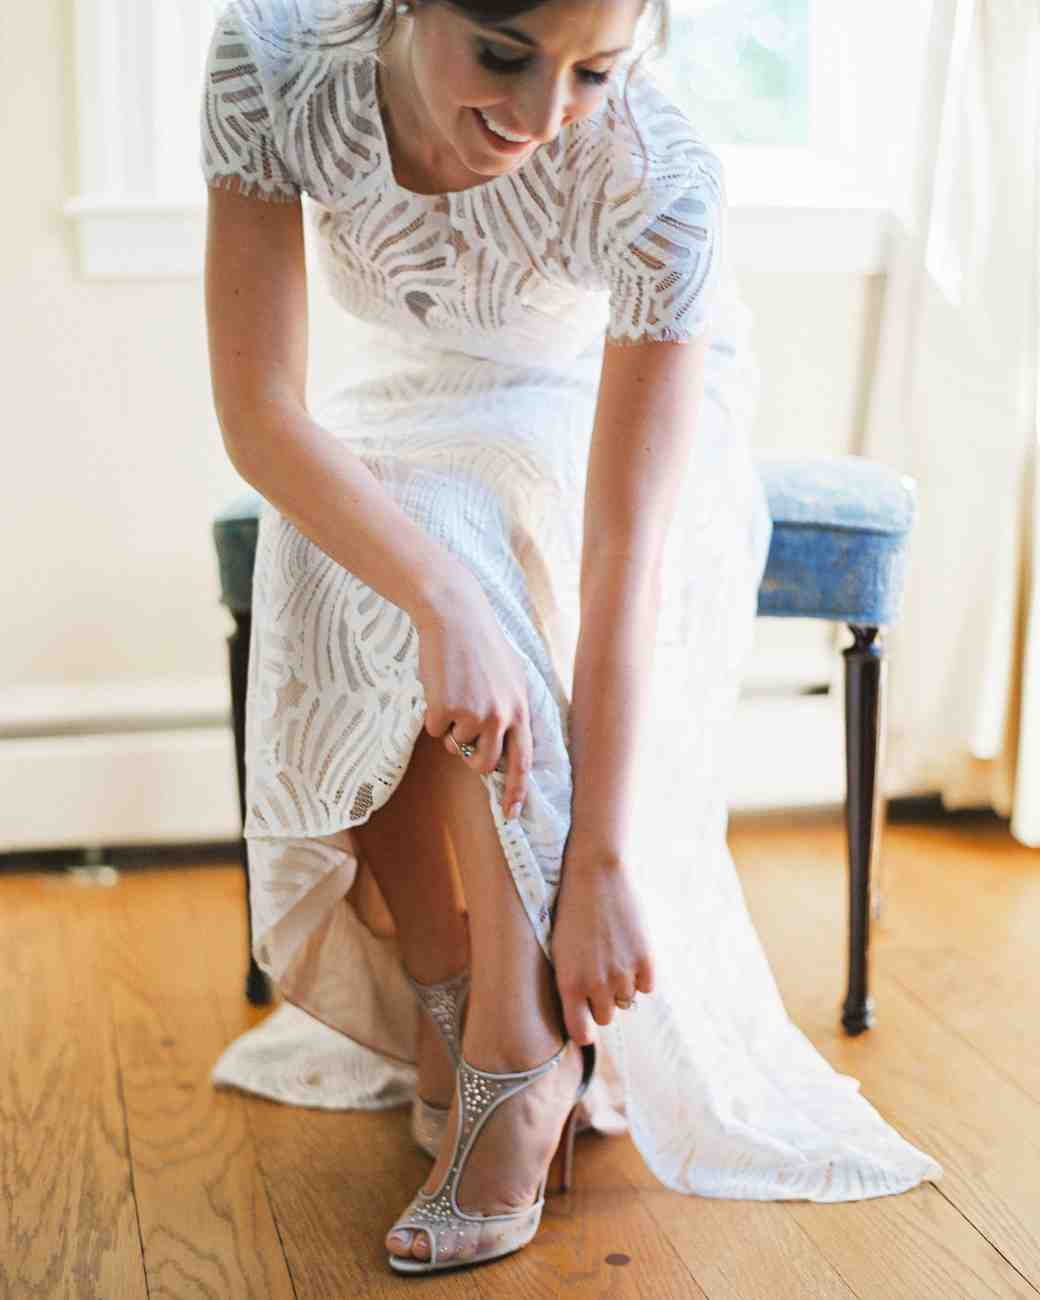 Easily Avoid Common Wedding Disasters| Wedding Planning, Wedding Planning Tips, Wedding, Wedding DIYs, DIY Wedding, Wedding Timeline #Wedding #DIYWedding #WeddingTimeline